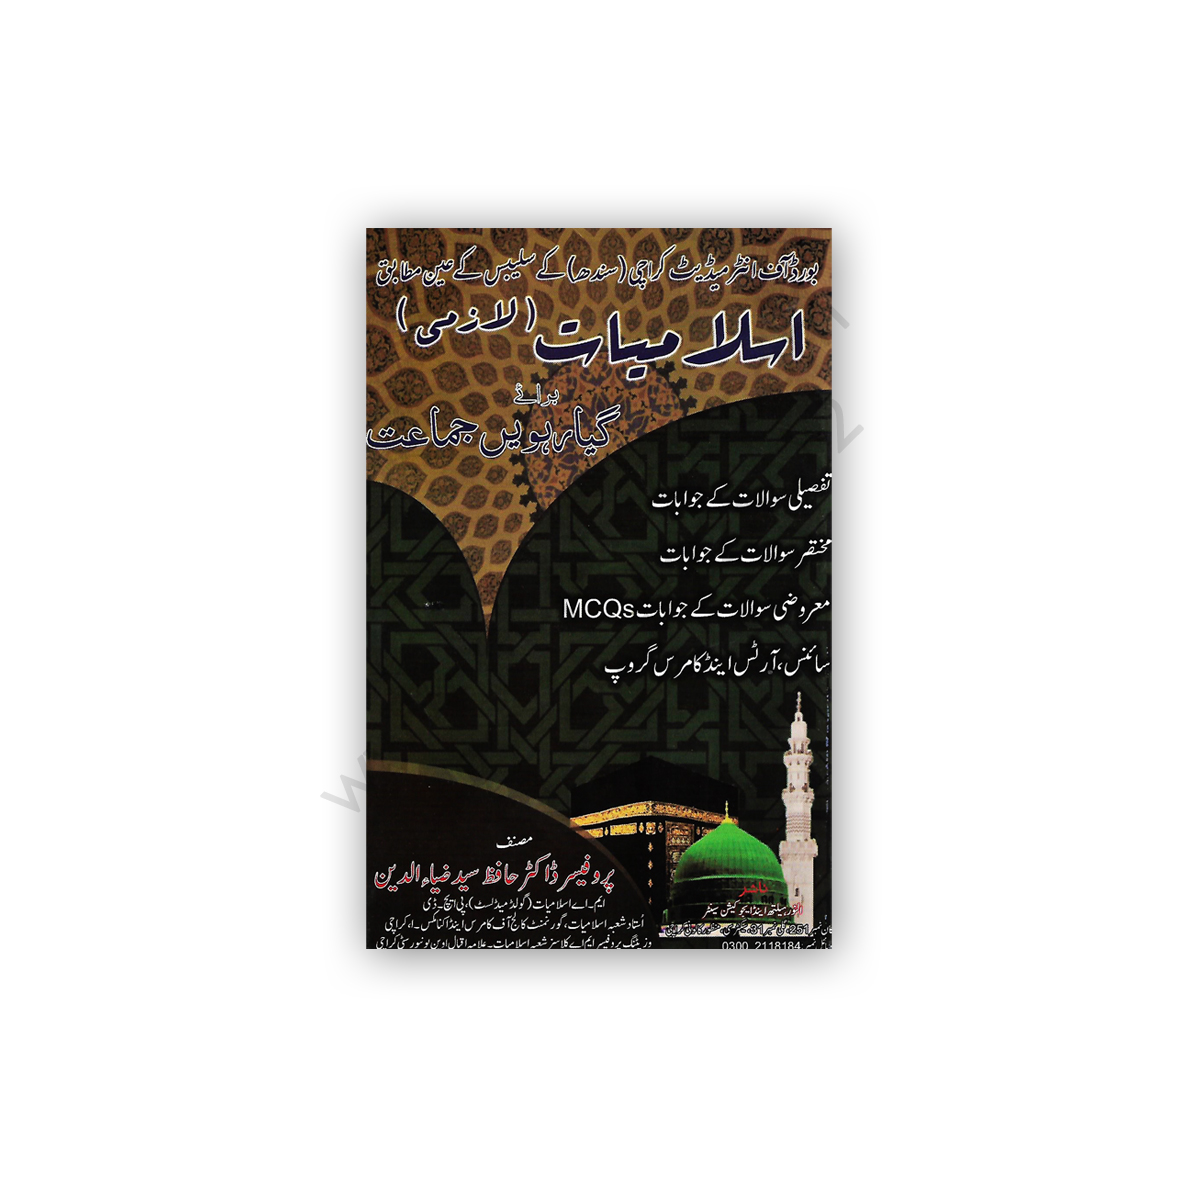 islamyat (laazmi) for class xi all group by syed zia ud din